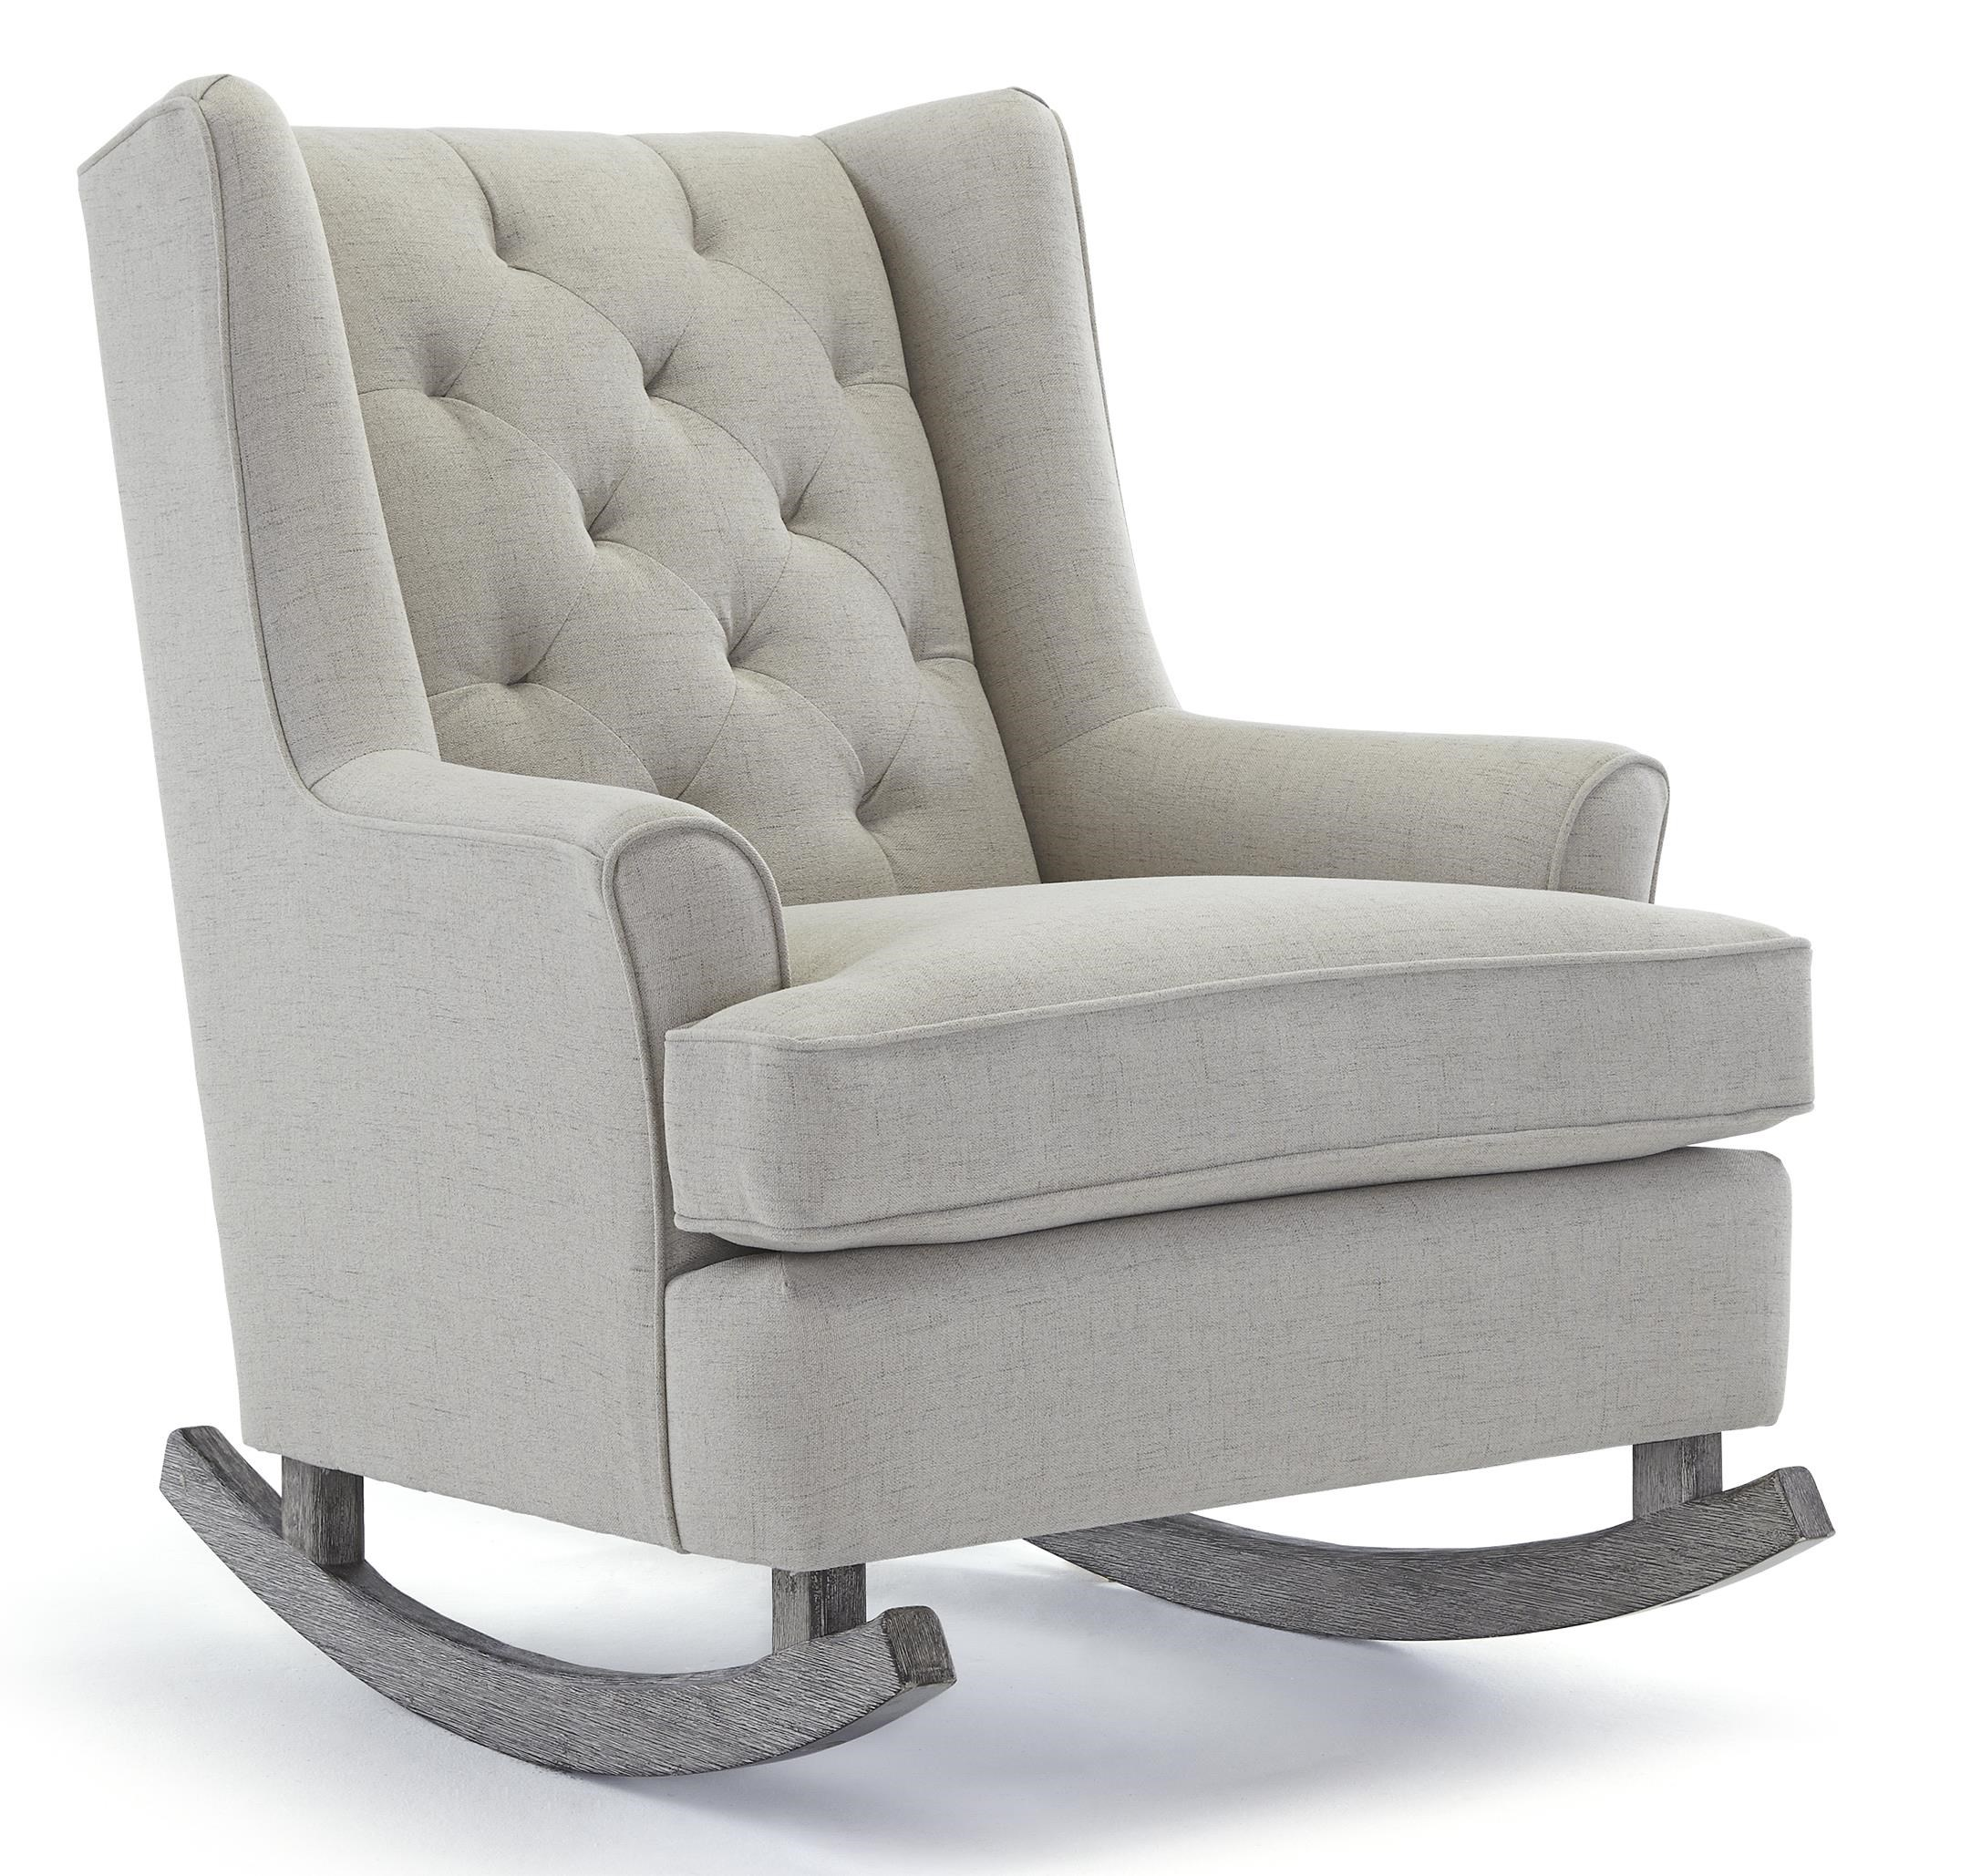 Delightful Best Home Furnishings Runner Rockers Paisley Button Tufted Rocking Chair  With Wood Runners